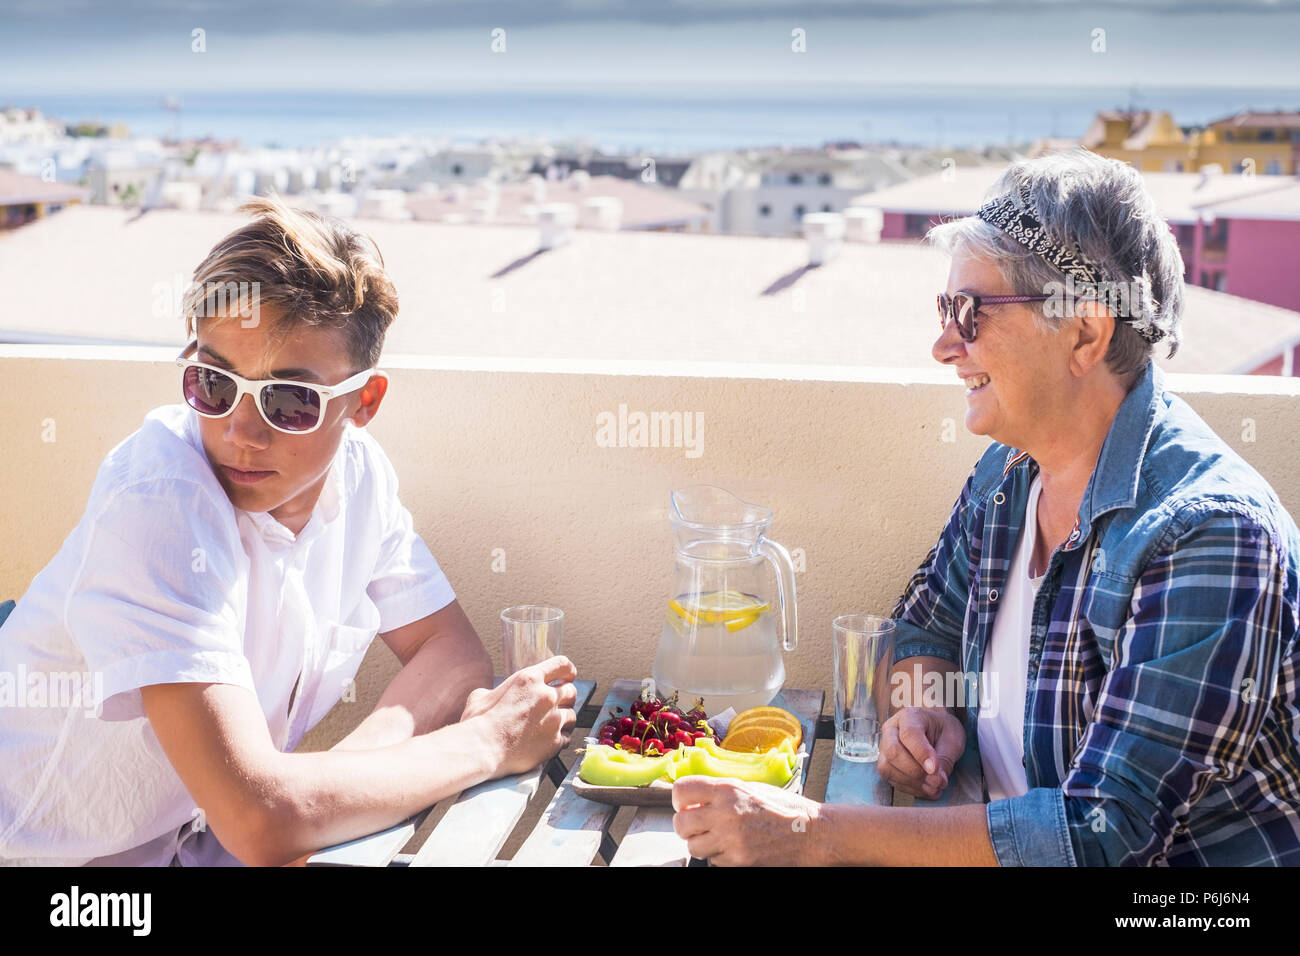 Happy and smiled couple teenager boy and grandmother female. beautiful people outdoor having breakfast in the morning on a terrace with ocean and buil - Stock Image